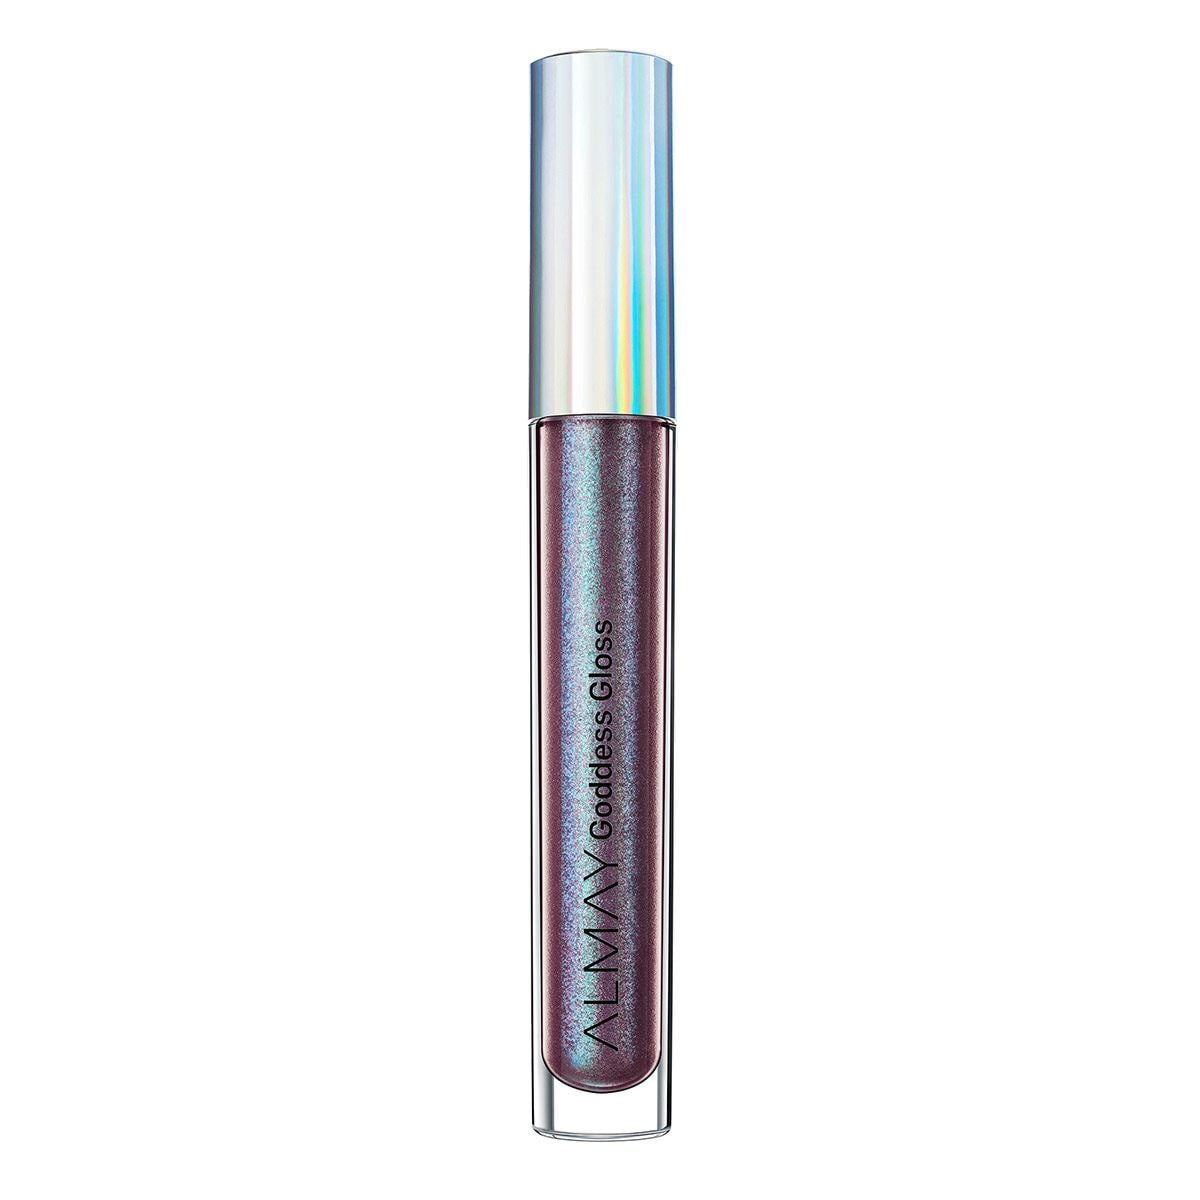 Labial Líquido  Almay Glaze Enchanted